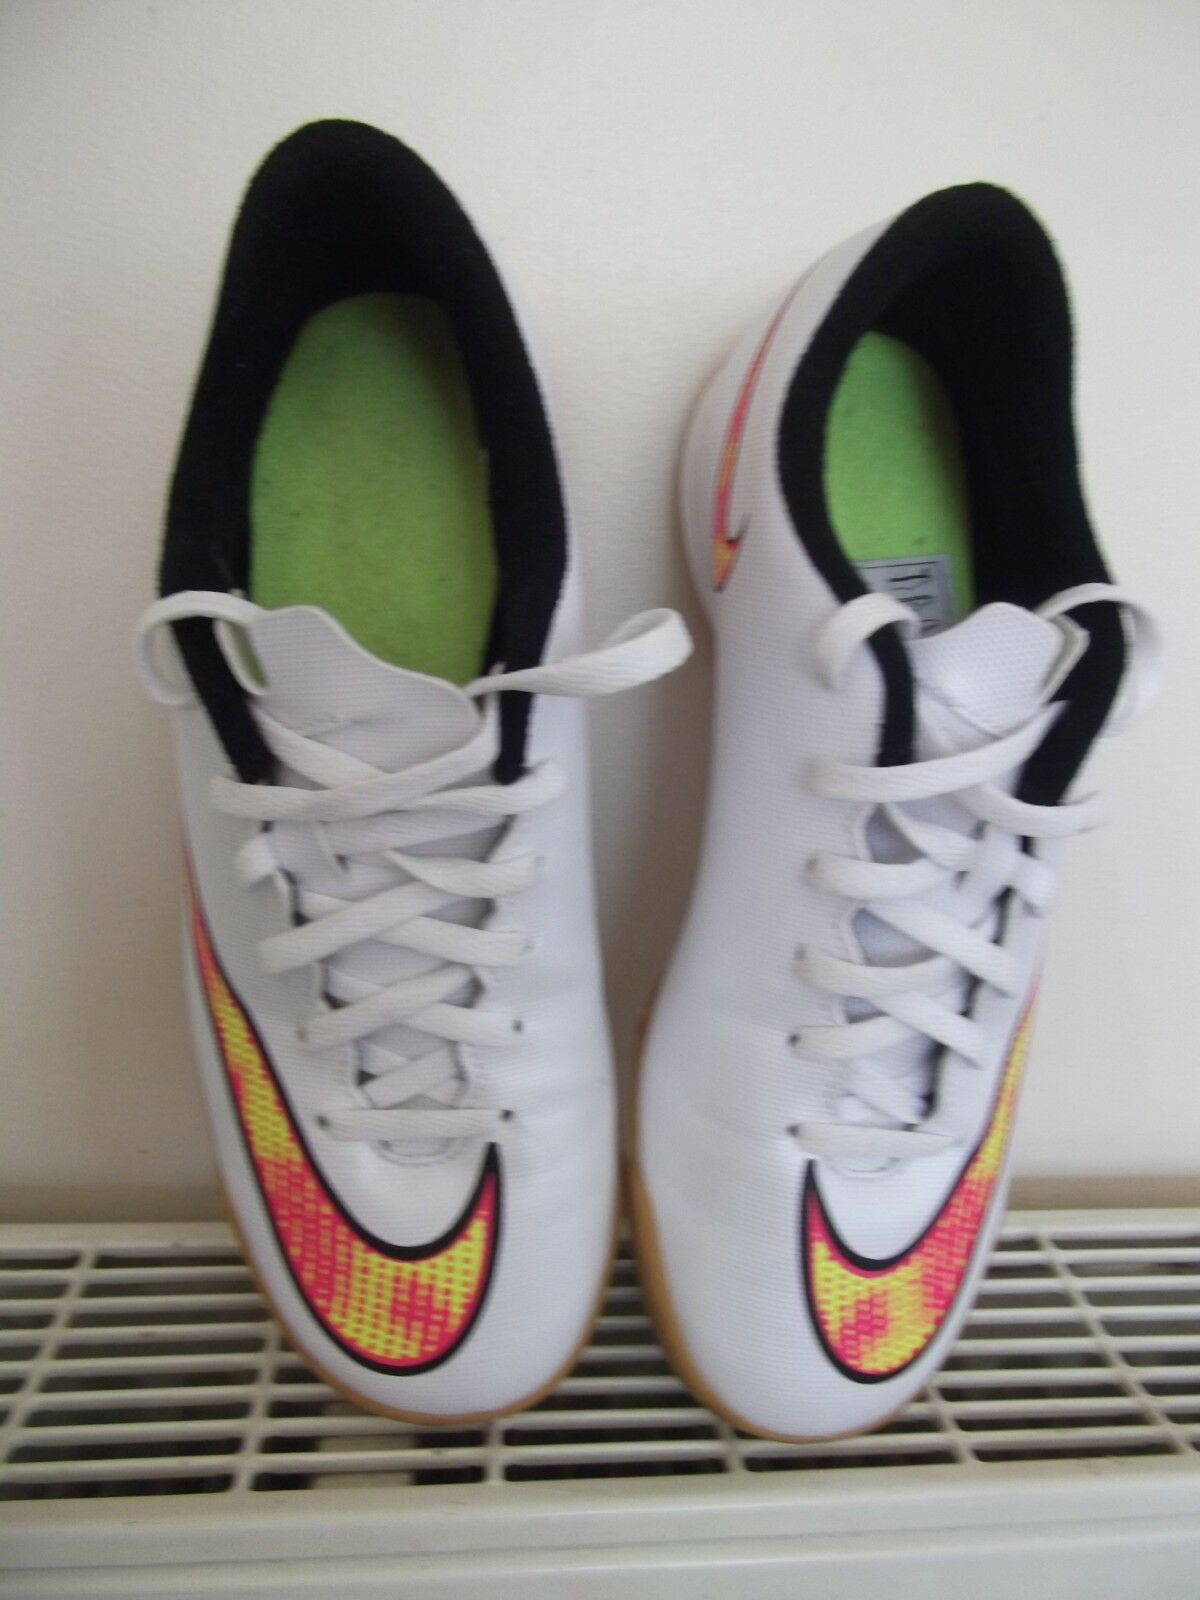 NIKE MERCURIAL WHITE TRAINERS FOOTBALL BOOTS ASTRO TURF - SIZE 6